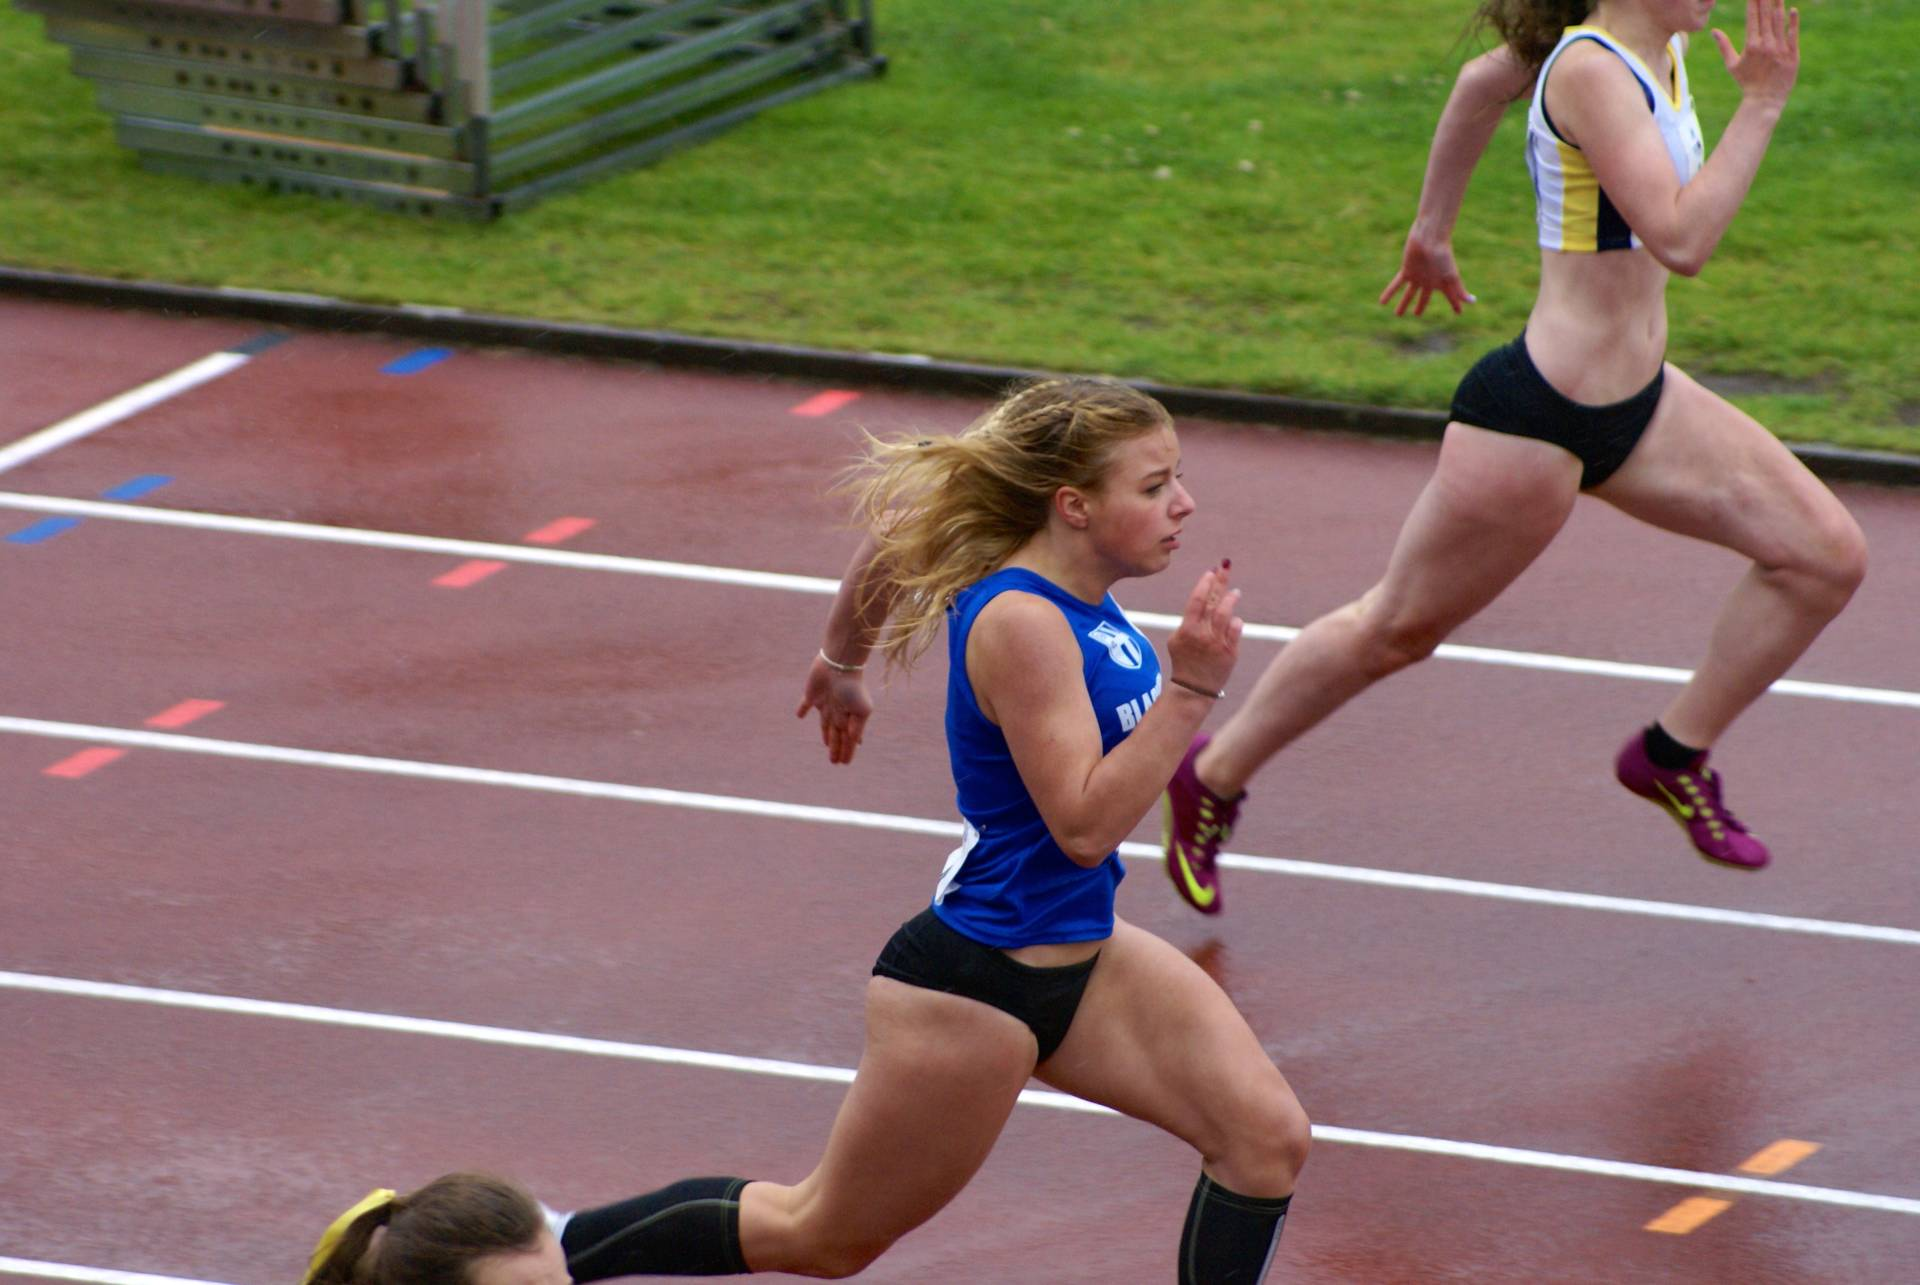 Harriers clinch Runners Up in the YDL Division One League for 2015